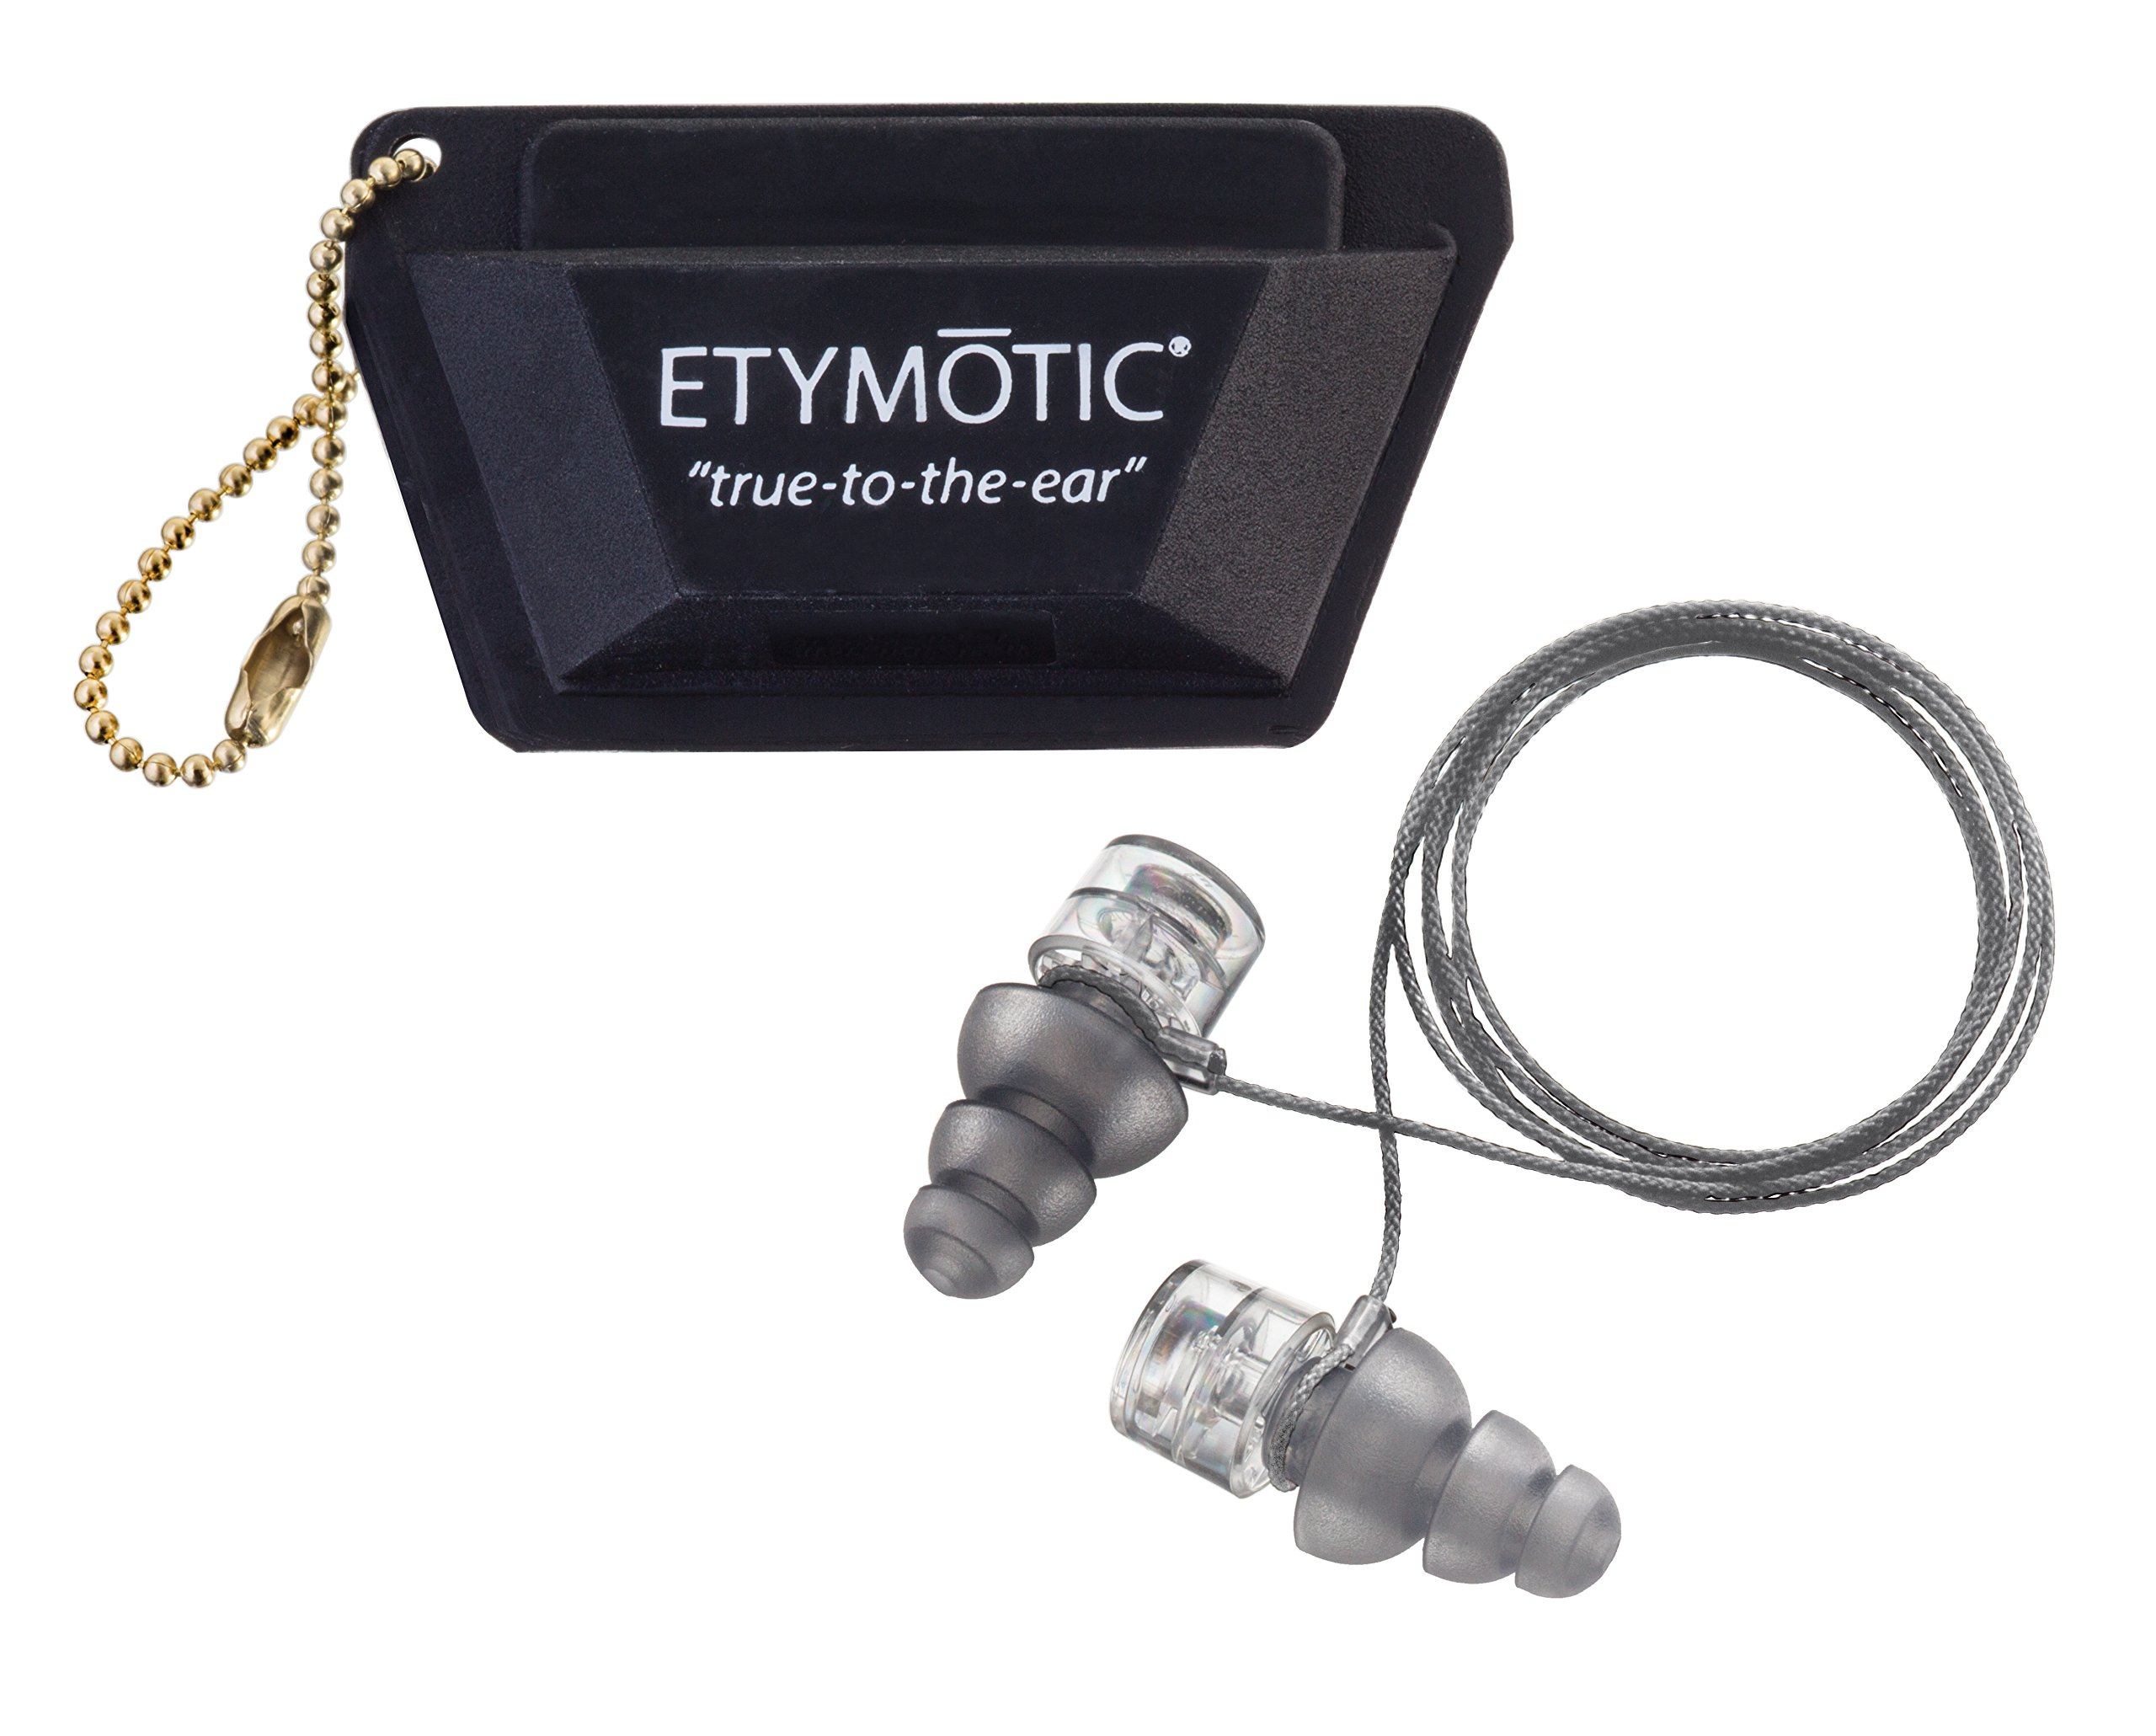 Etymotic High-Fidelity Earplugs, ER20XS Standard Fit, 1 pair, Polybag Packaging by Etymotic Research (Image #3)